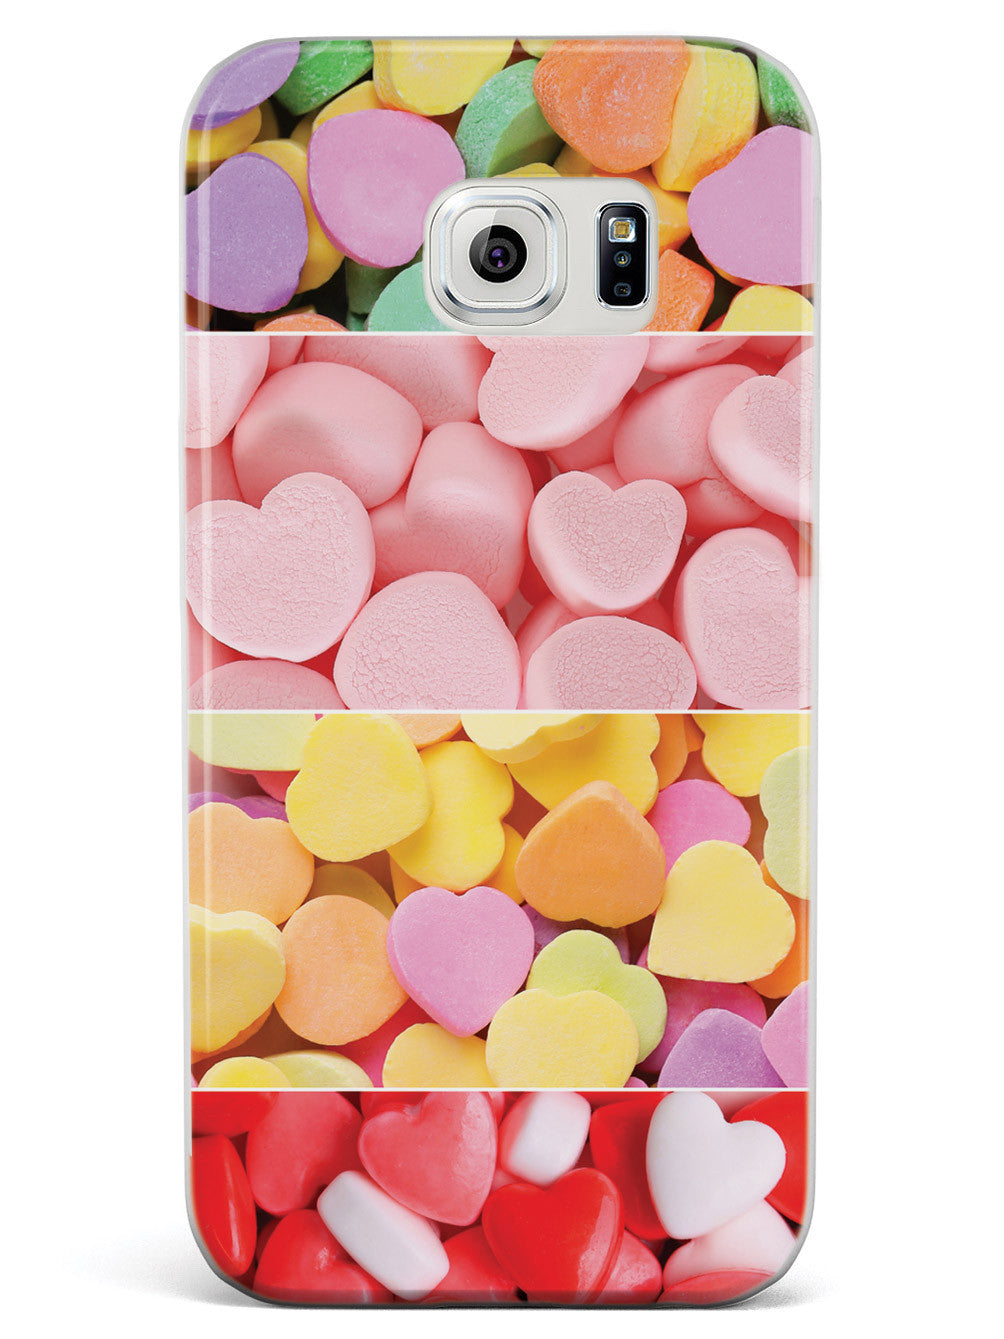 Variety of Candy Hearts Case